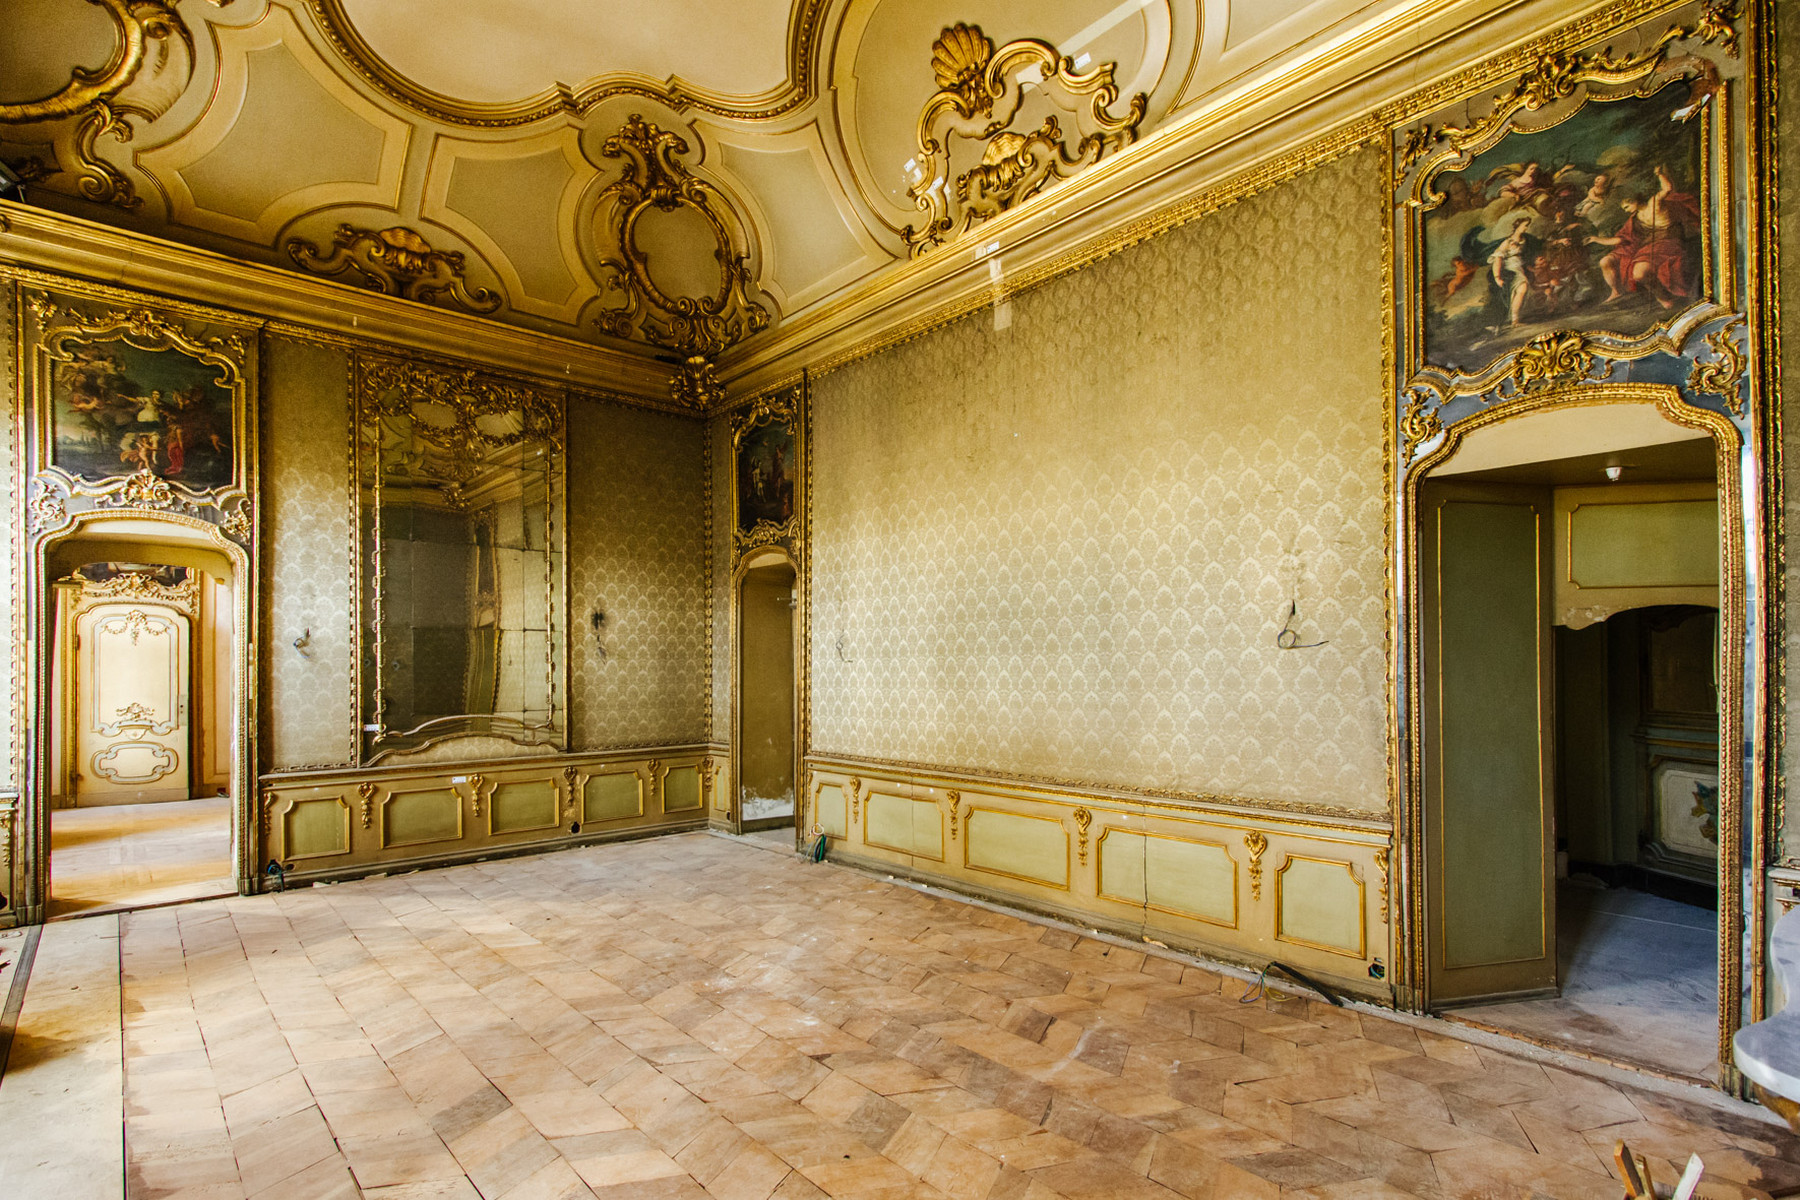 Apartamento por un Venta en Splendid Baroque architecture apartment in historic center Piazza Savoia Torino, Turin 10122 Italia